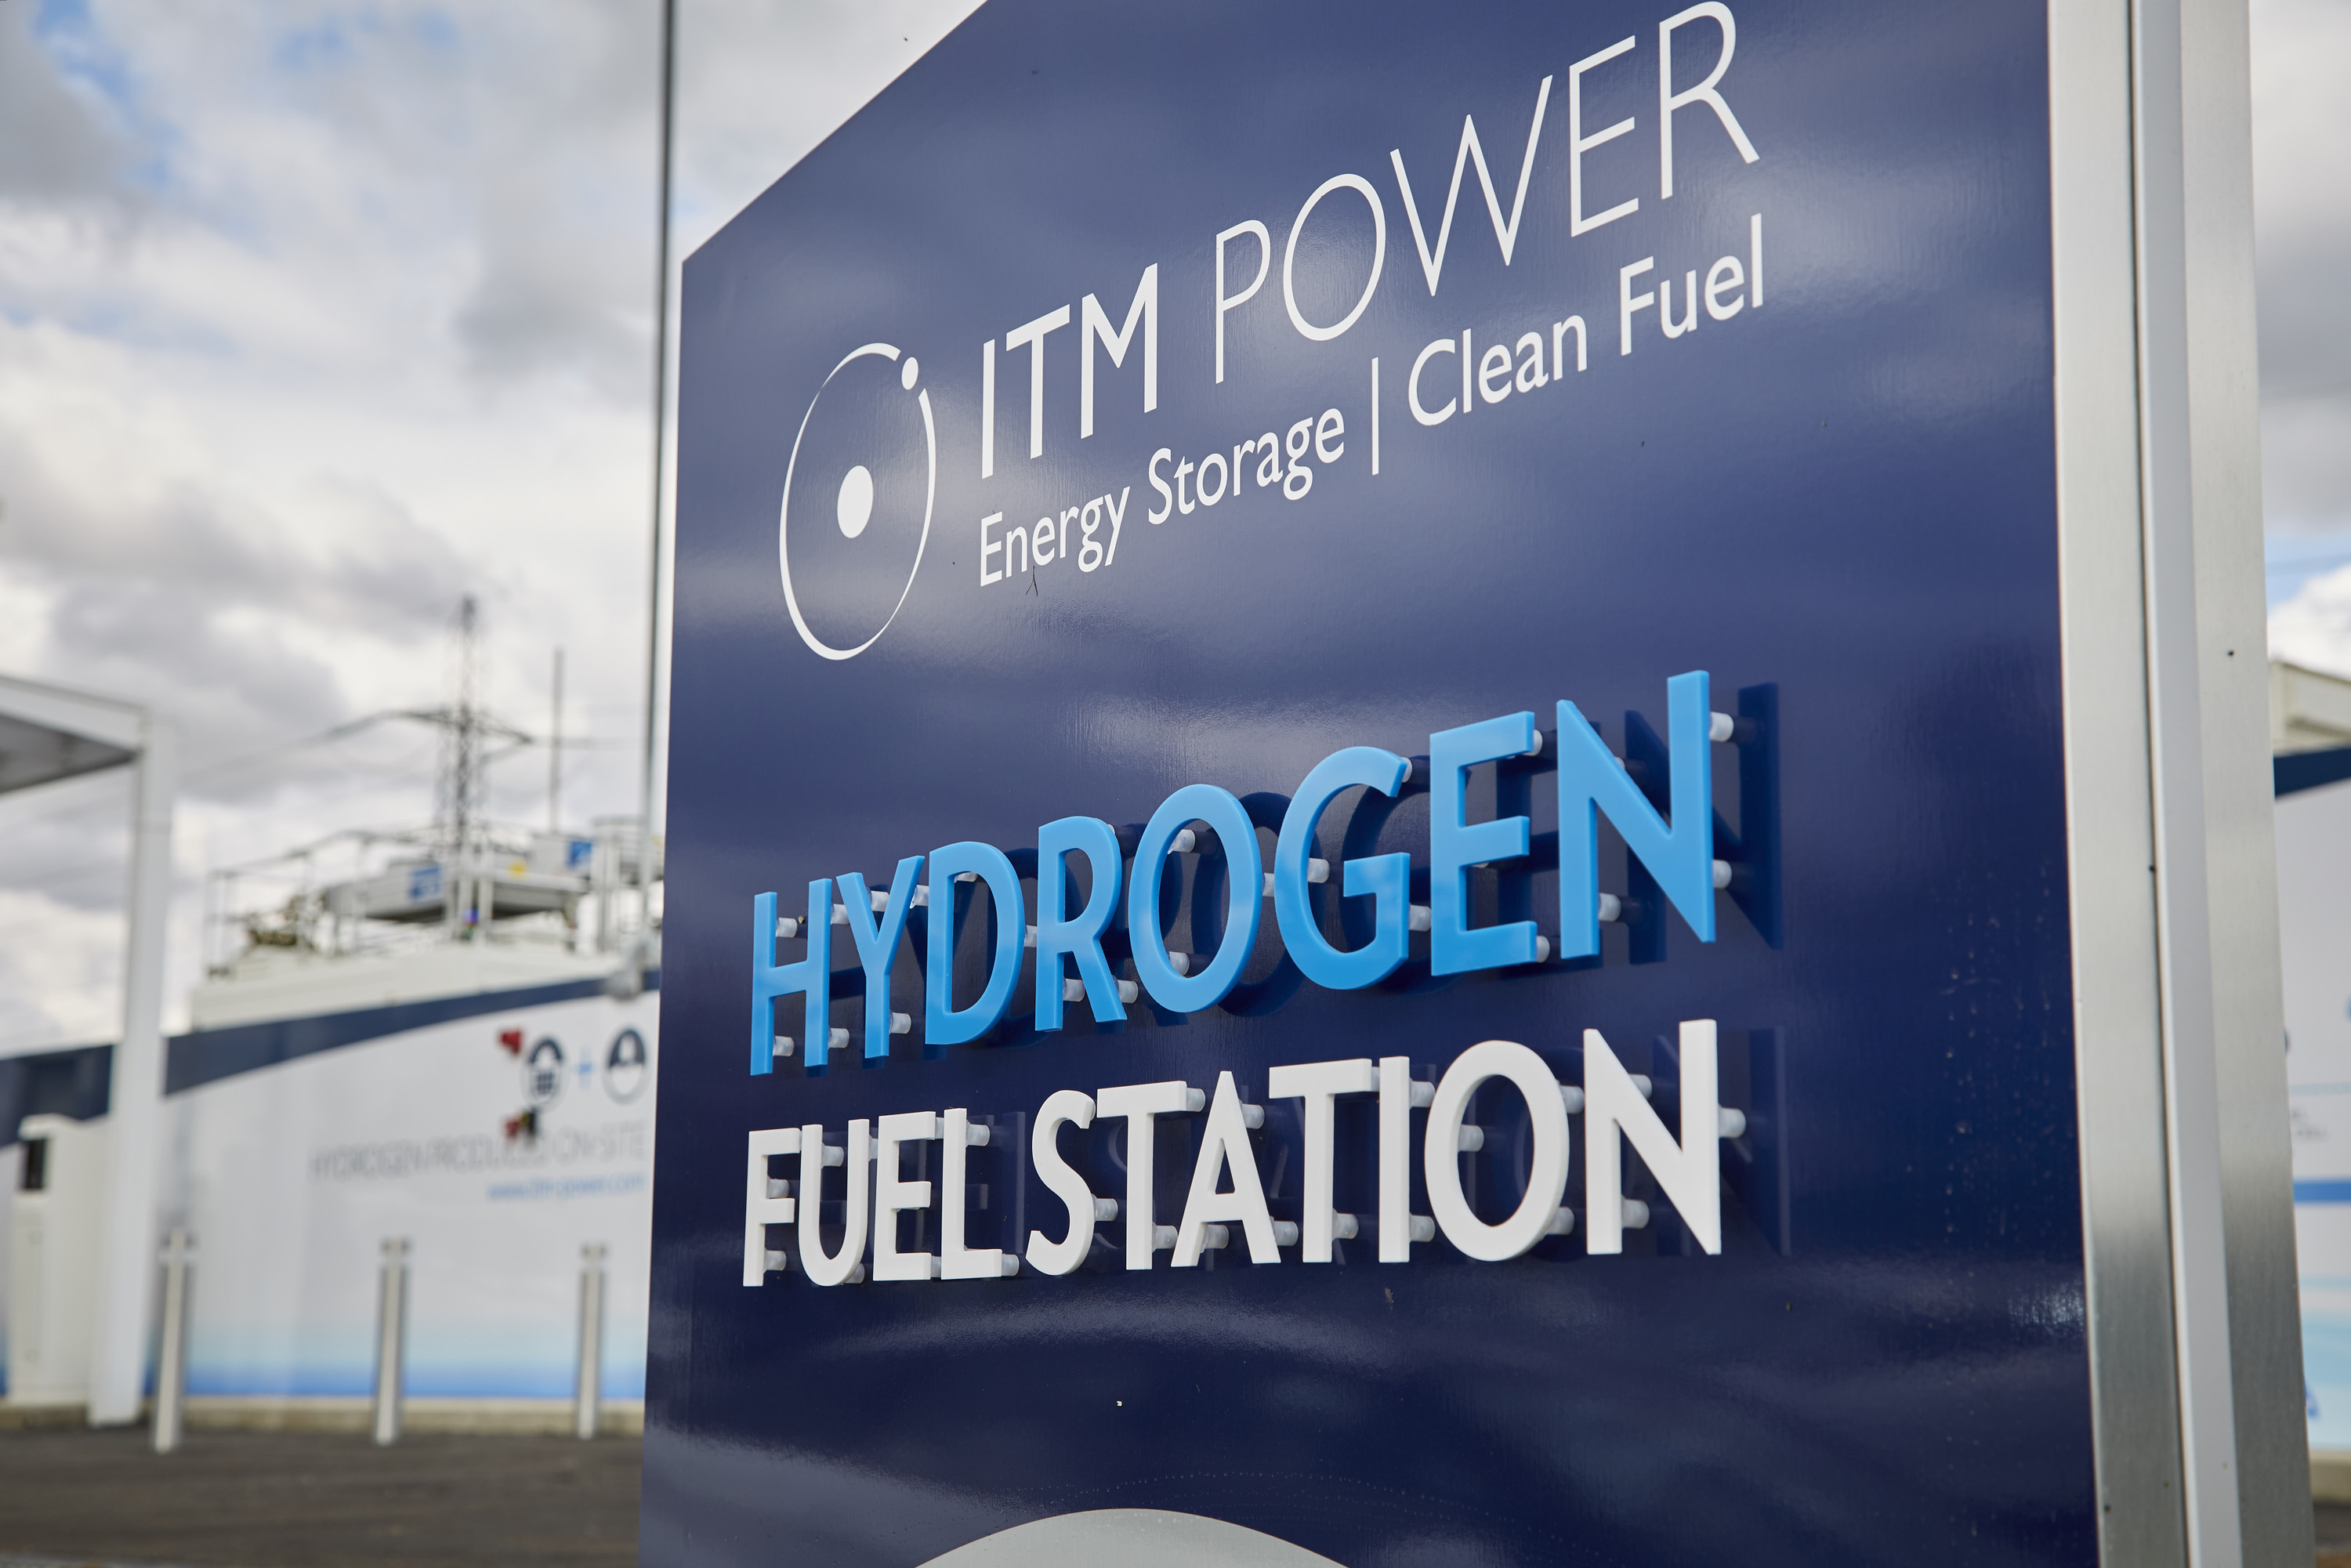 File:Hydrogen Fuel Station Sign.jpg - Wikimedia Commons